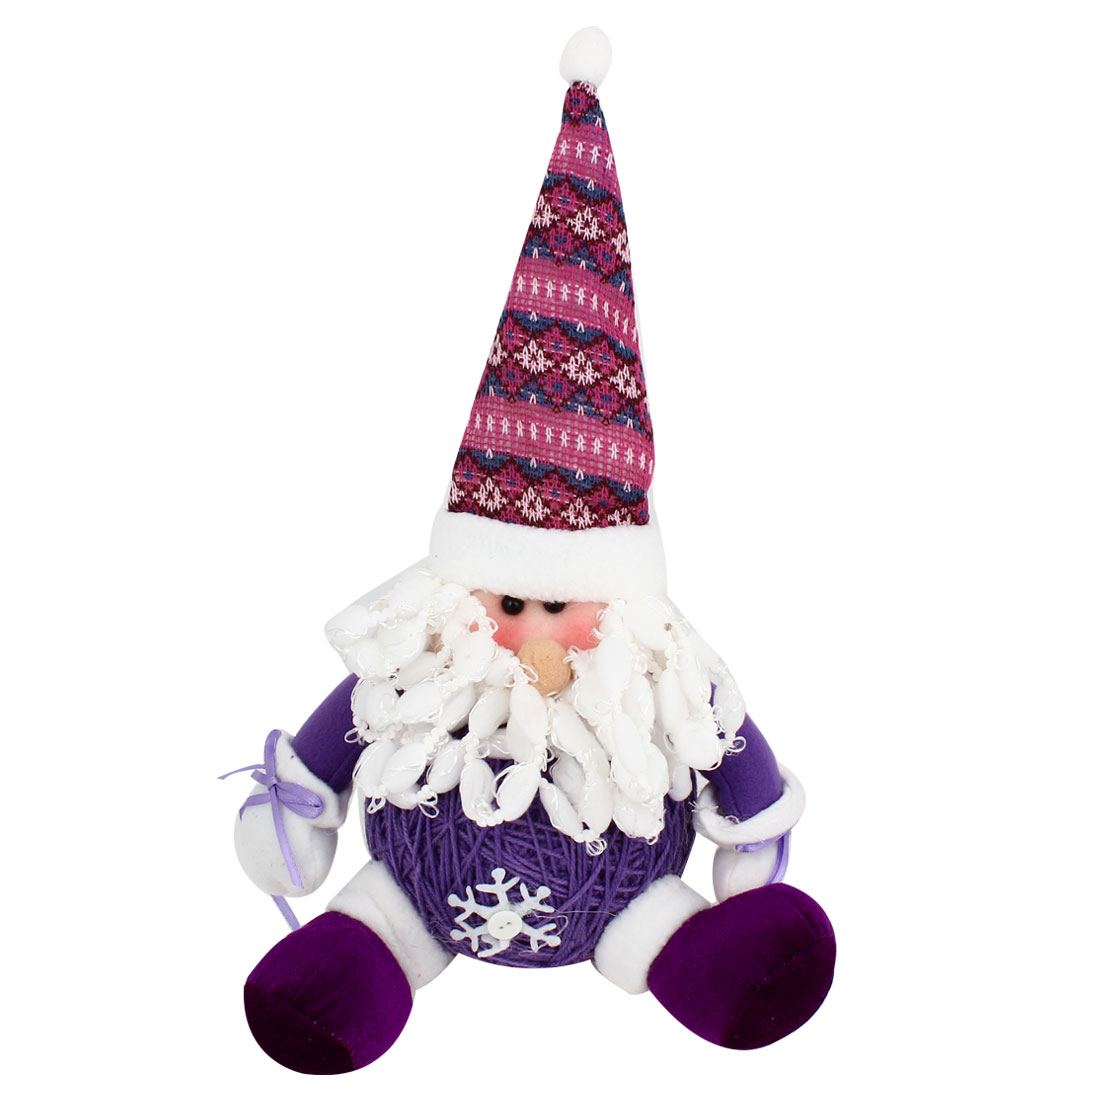 Long Mustache Santa Claus Christmas Toy Doll Gift Purple White for Xmas Trees Ornament